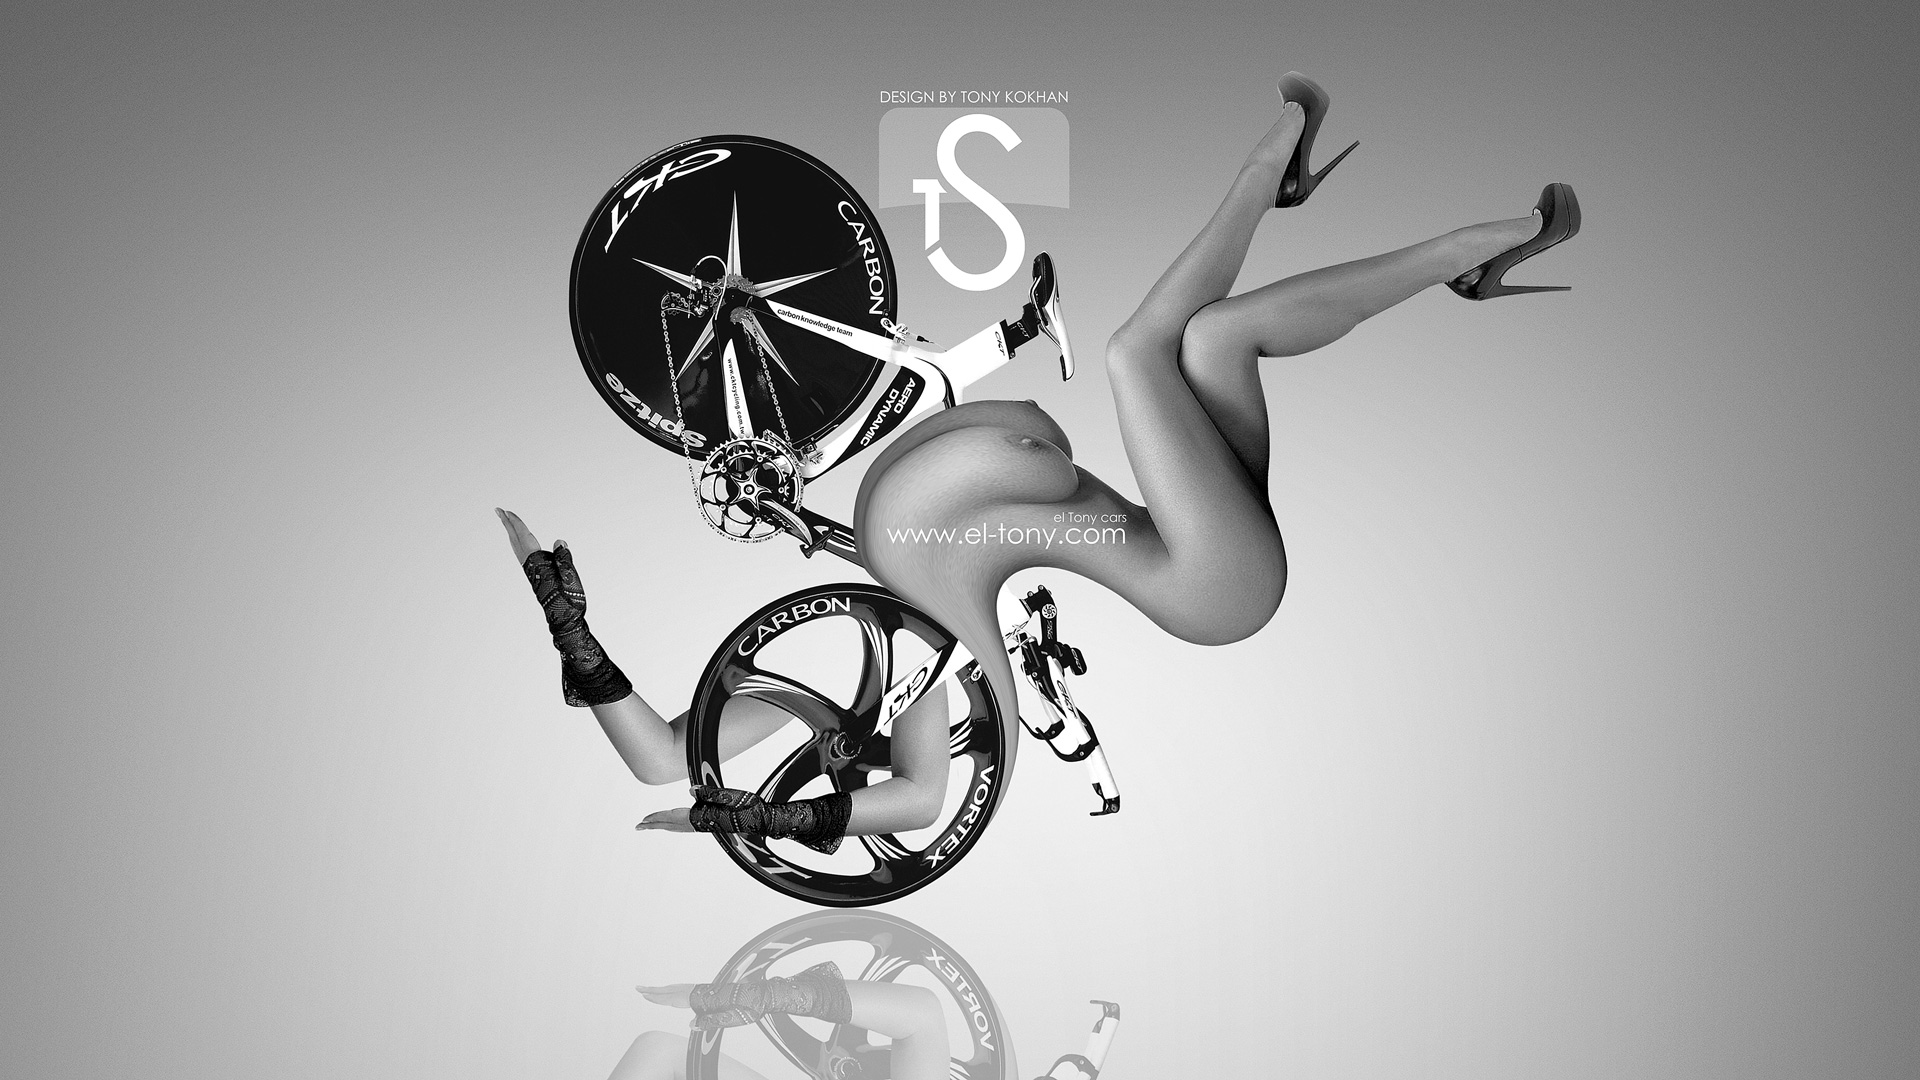 Velo-Bike-CKT-Fantasy-Sexy-Girl-2013-HD-Wallpapers-design-by-Tony-Kokhan-[www.el-tony.com]